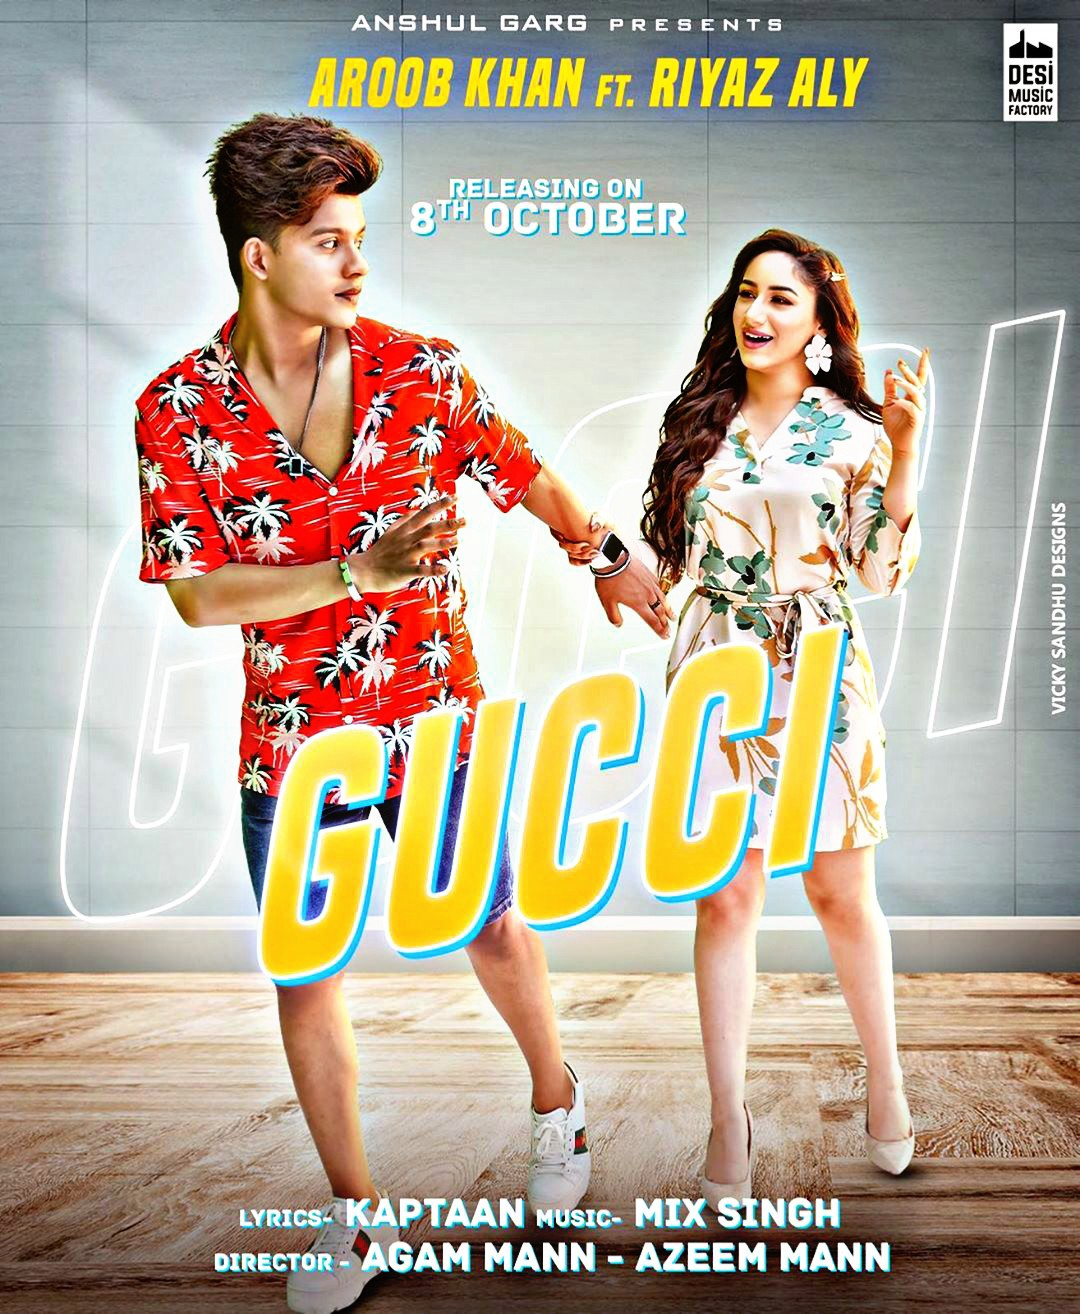 Gucci Song Lyrics In Hindi And English Riyaz Aly Aroob Khan Desi Music Factory By The Lyrics Medium We have collected lots of new and old movies sad songs that you would love to read, listen and watch the video of that song too. gucci song lyrics in hindi and english